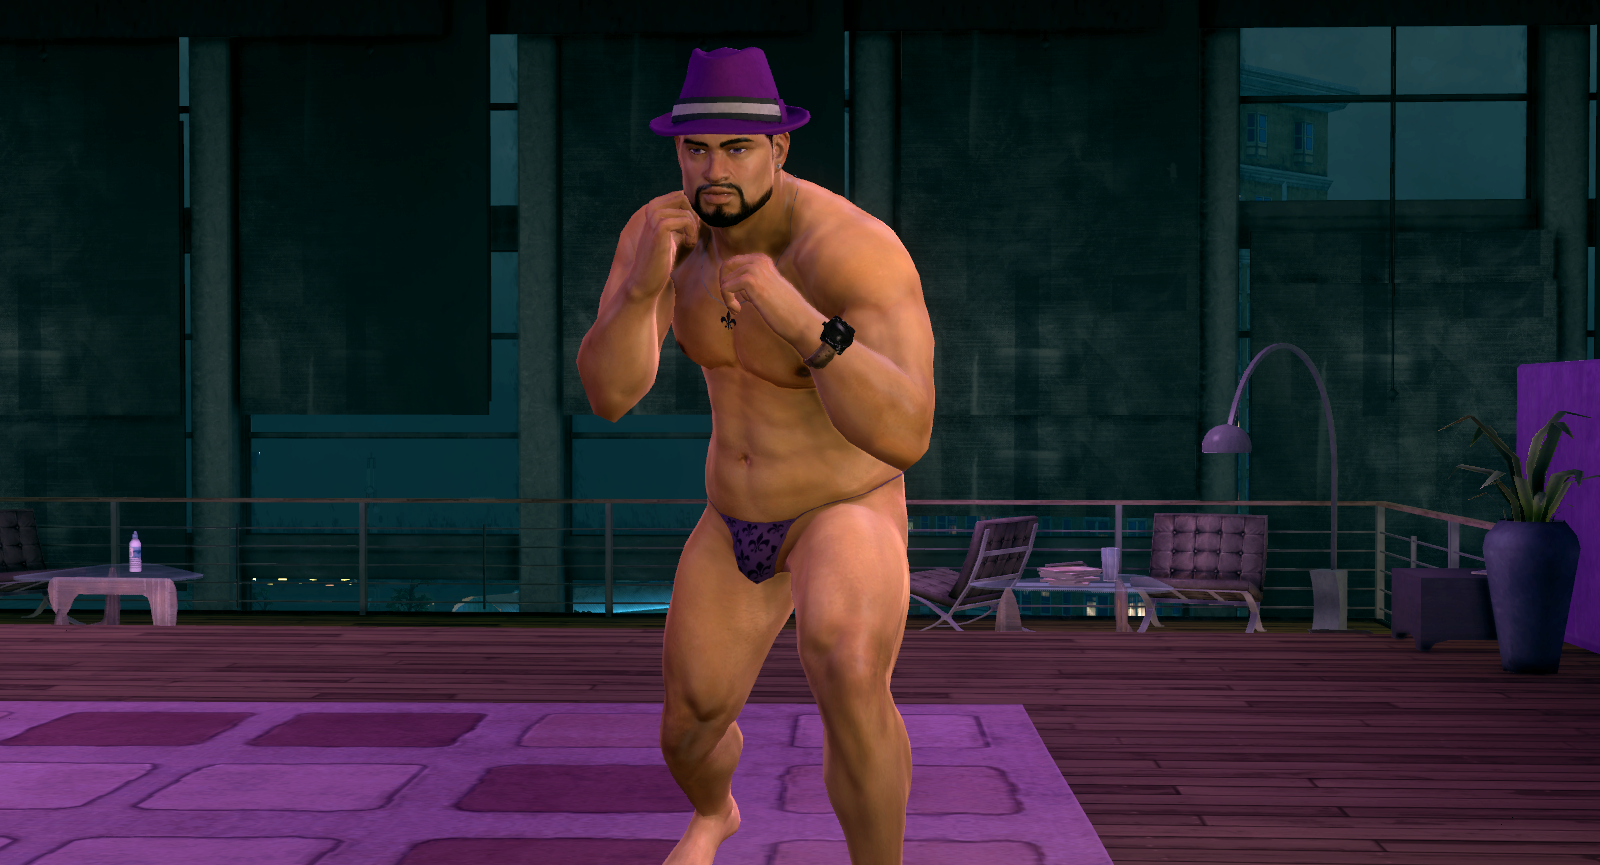 Saints row 4 male nudity patch nude scenes